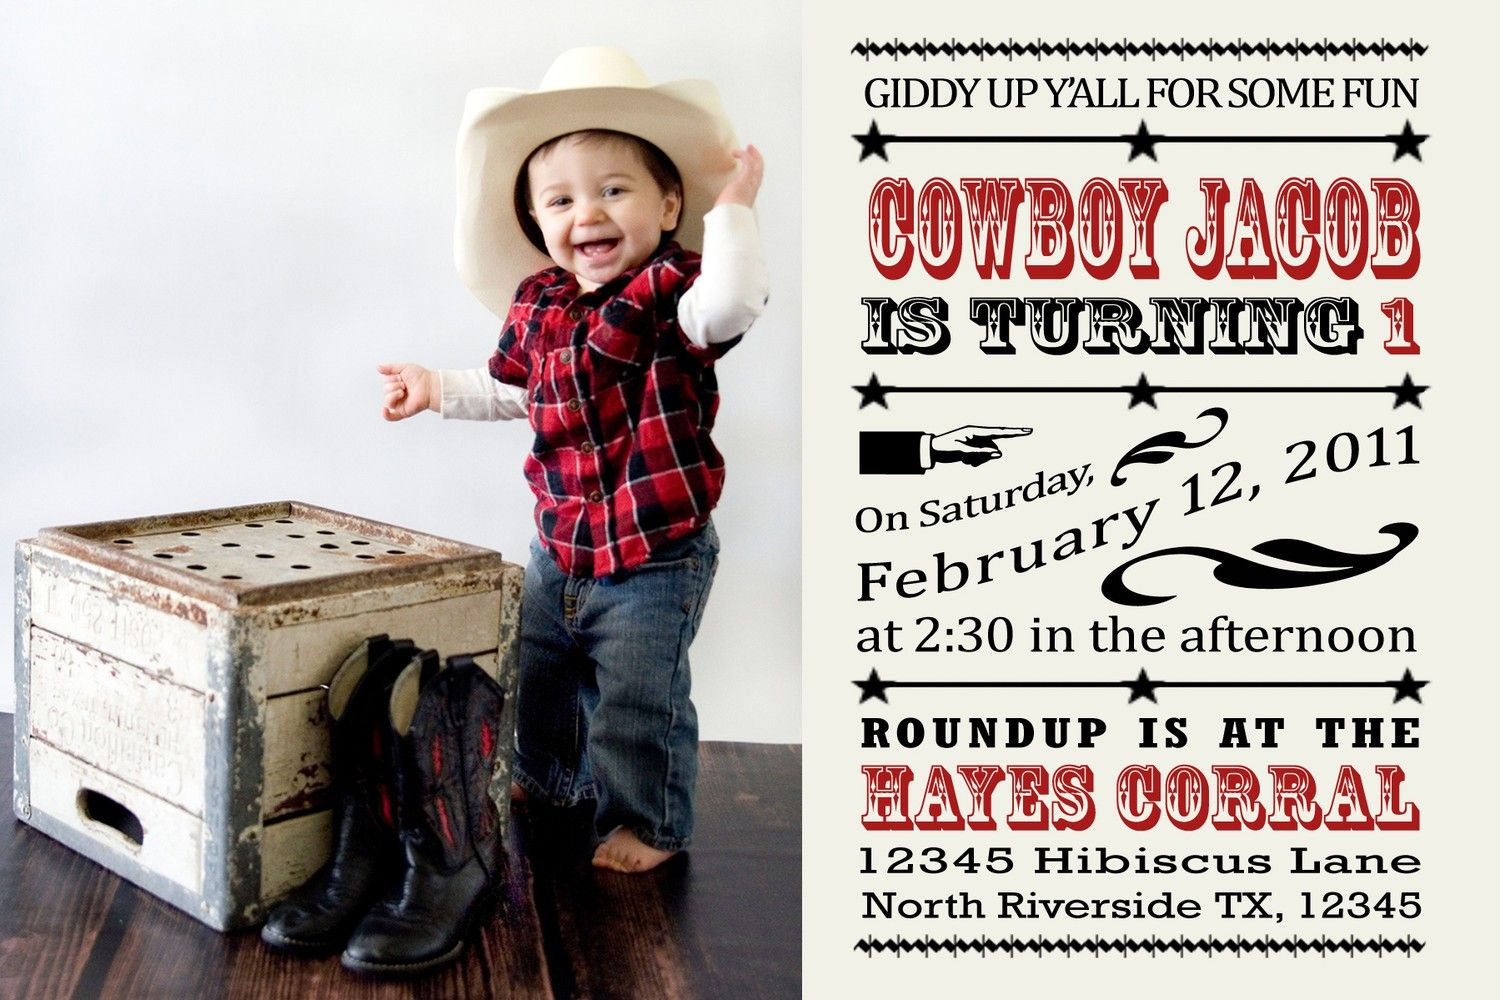 Cowboy Invitation - Giddy Up Western Birthday Theme | Party Party ...